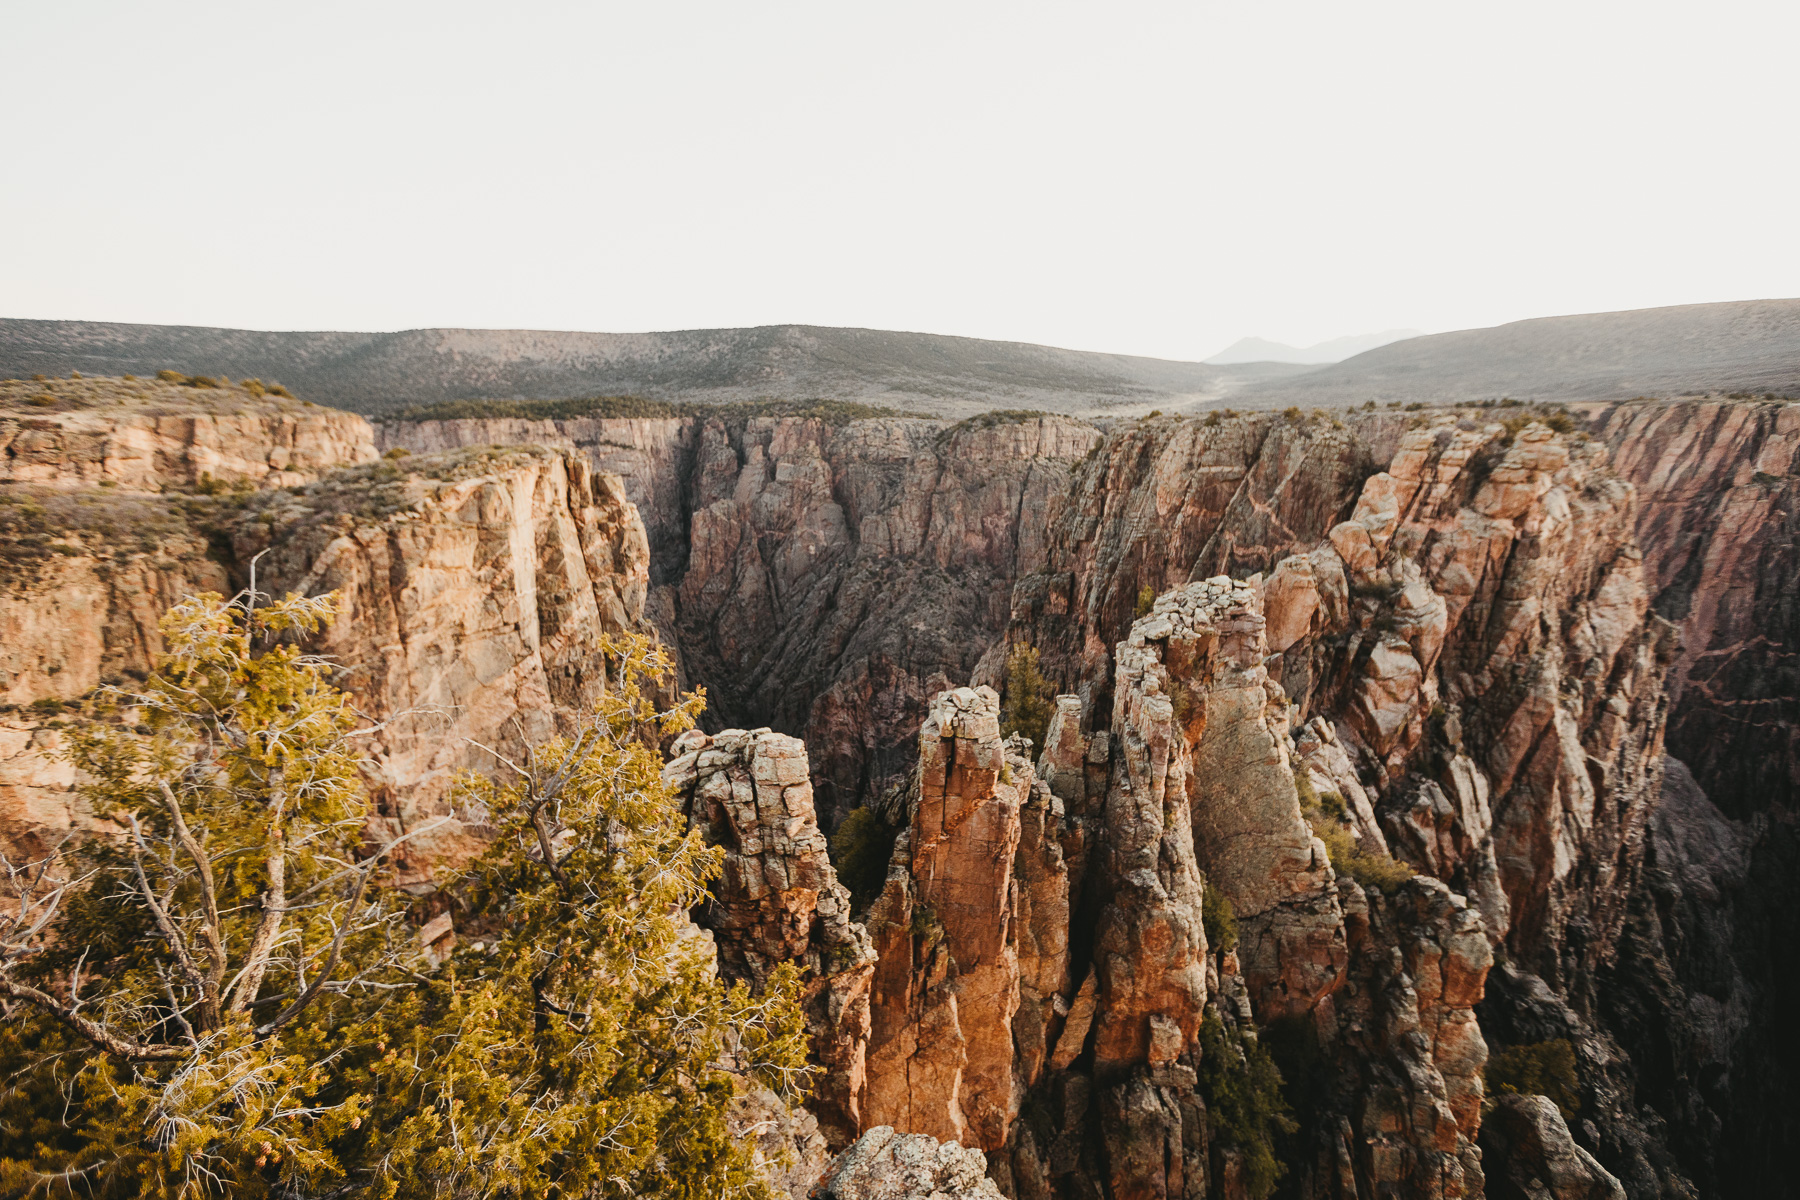 The Ultimate 10 Day Road Trip Through Colorado | Black Canyon of the Gunnison National Park